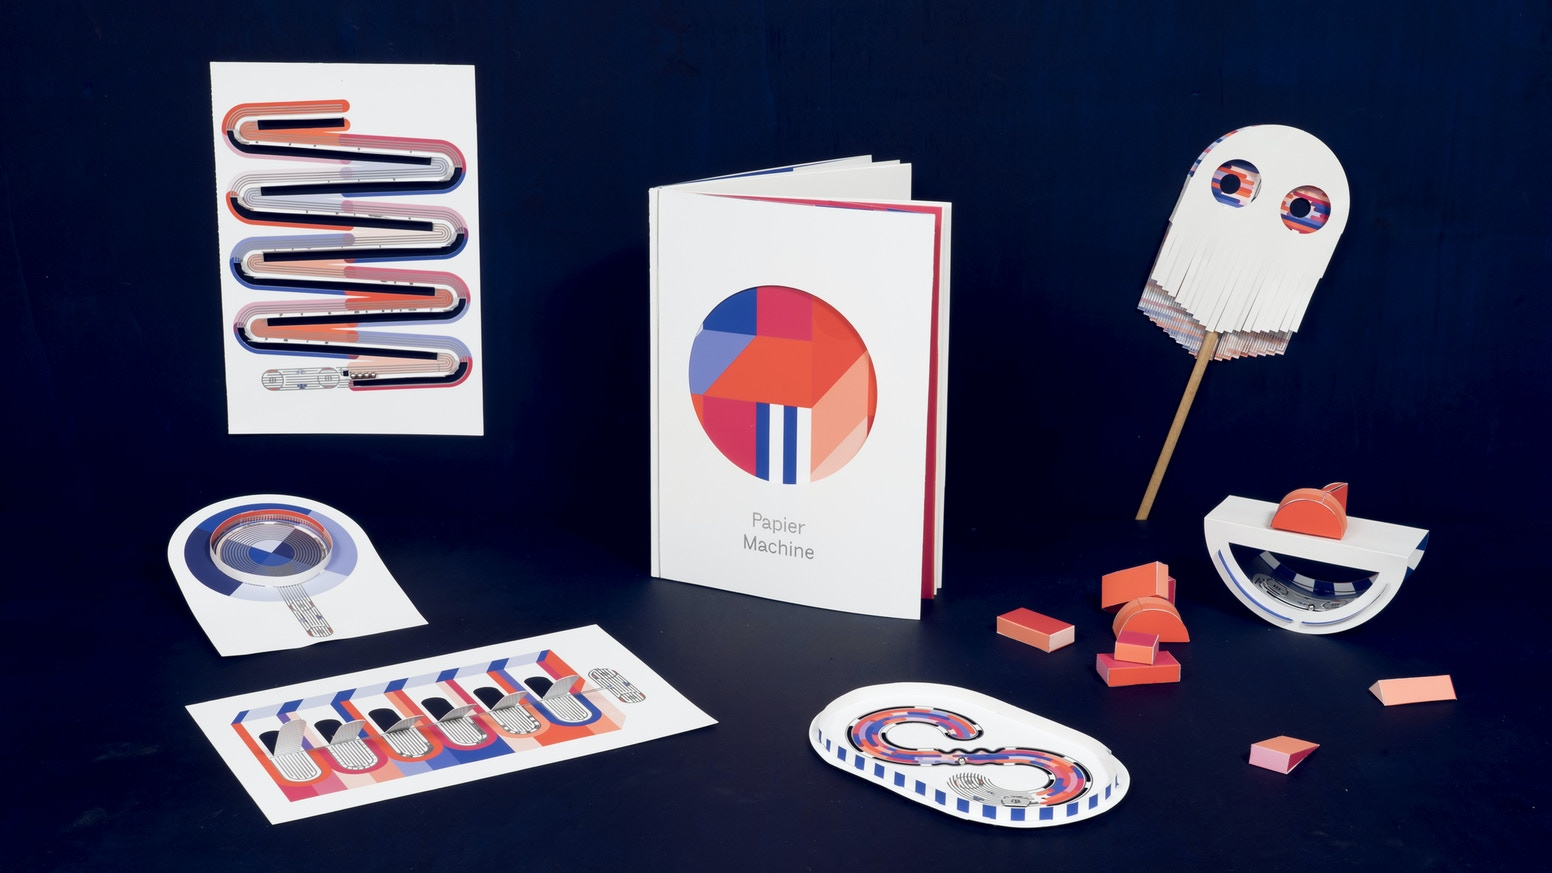 Papier Machine are books of electronic papertoys, created by Marion Pinaffo & Raphaël Pluvinage since 2014. In Jan. 2018 they launched this campaign with Agnes Agullo. From Sept. 2018, Marion & Raphaël kept taking care of it. Rewards were sent for Xmas.